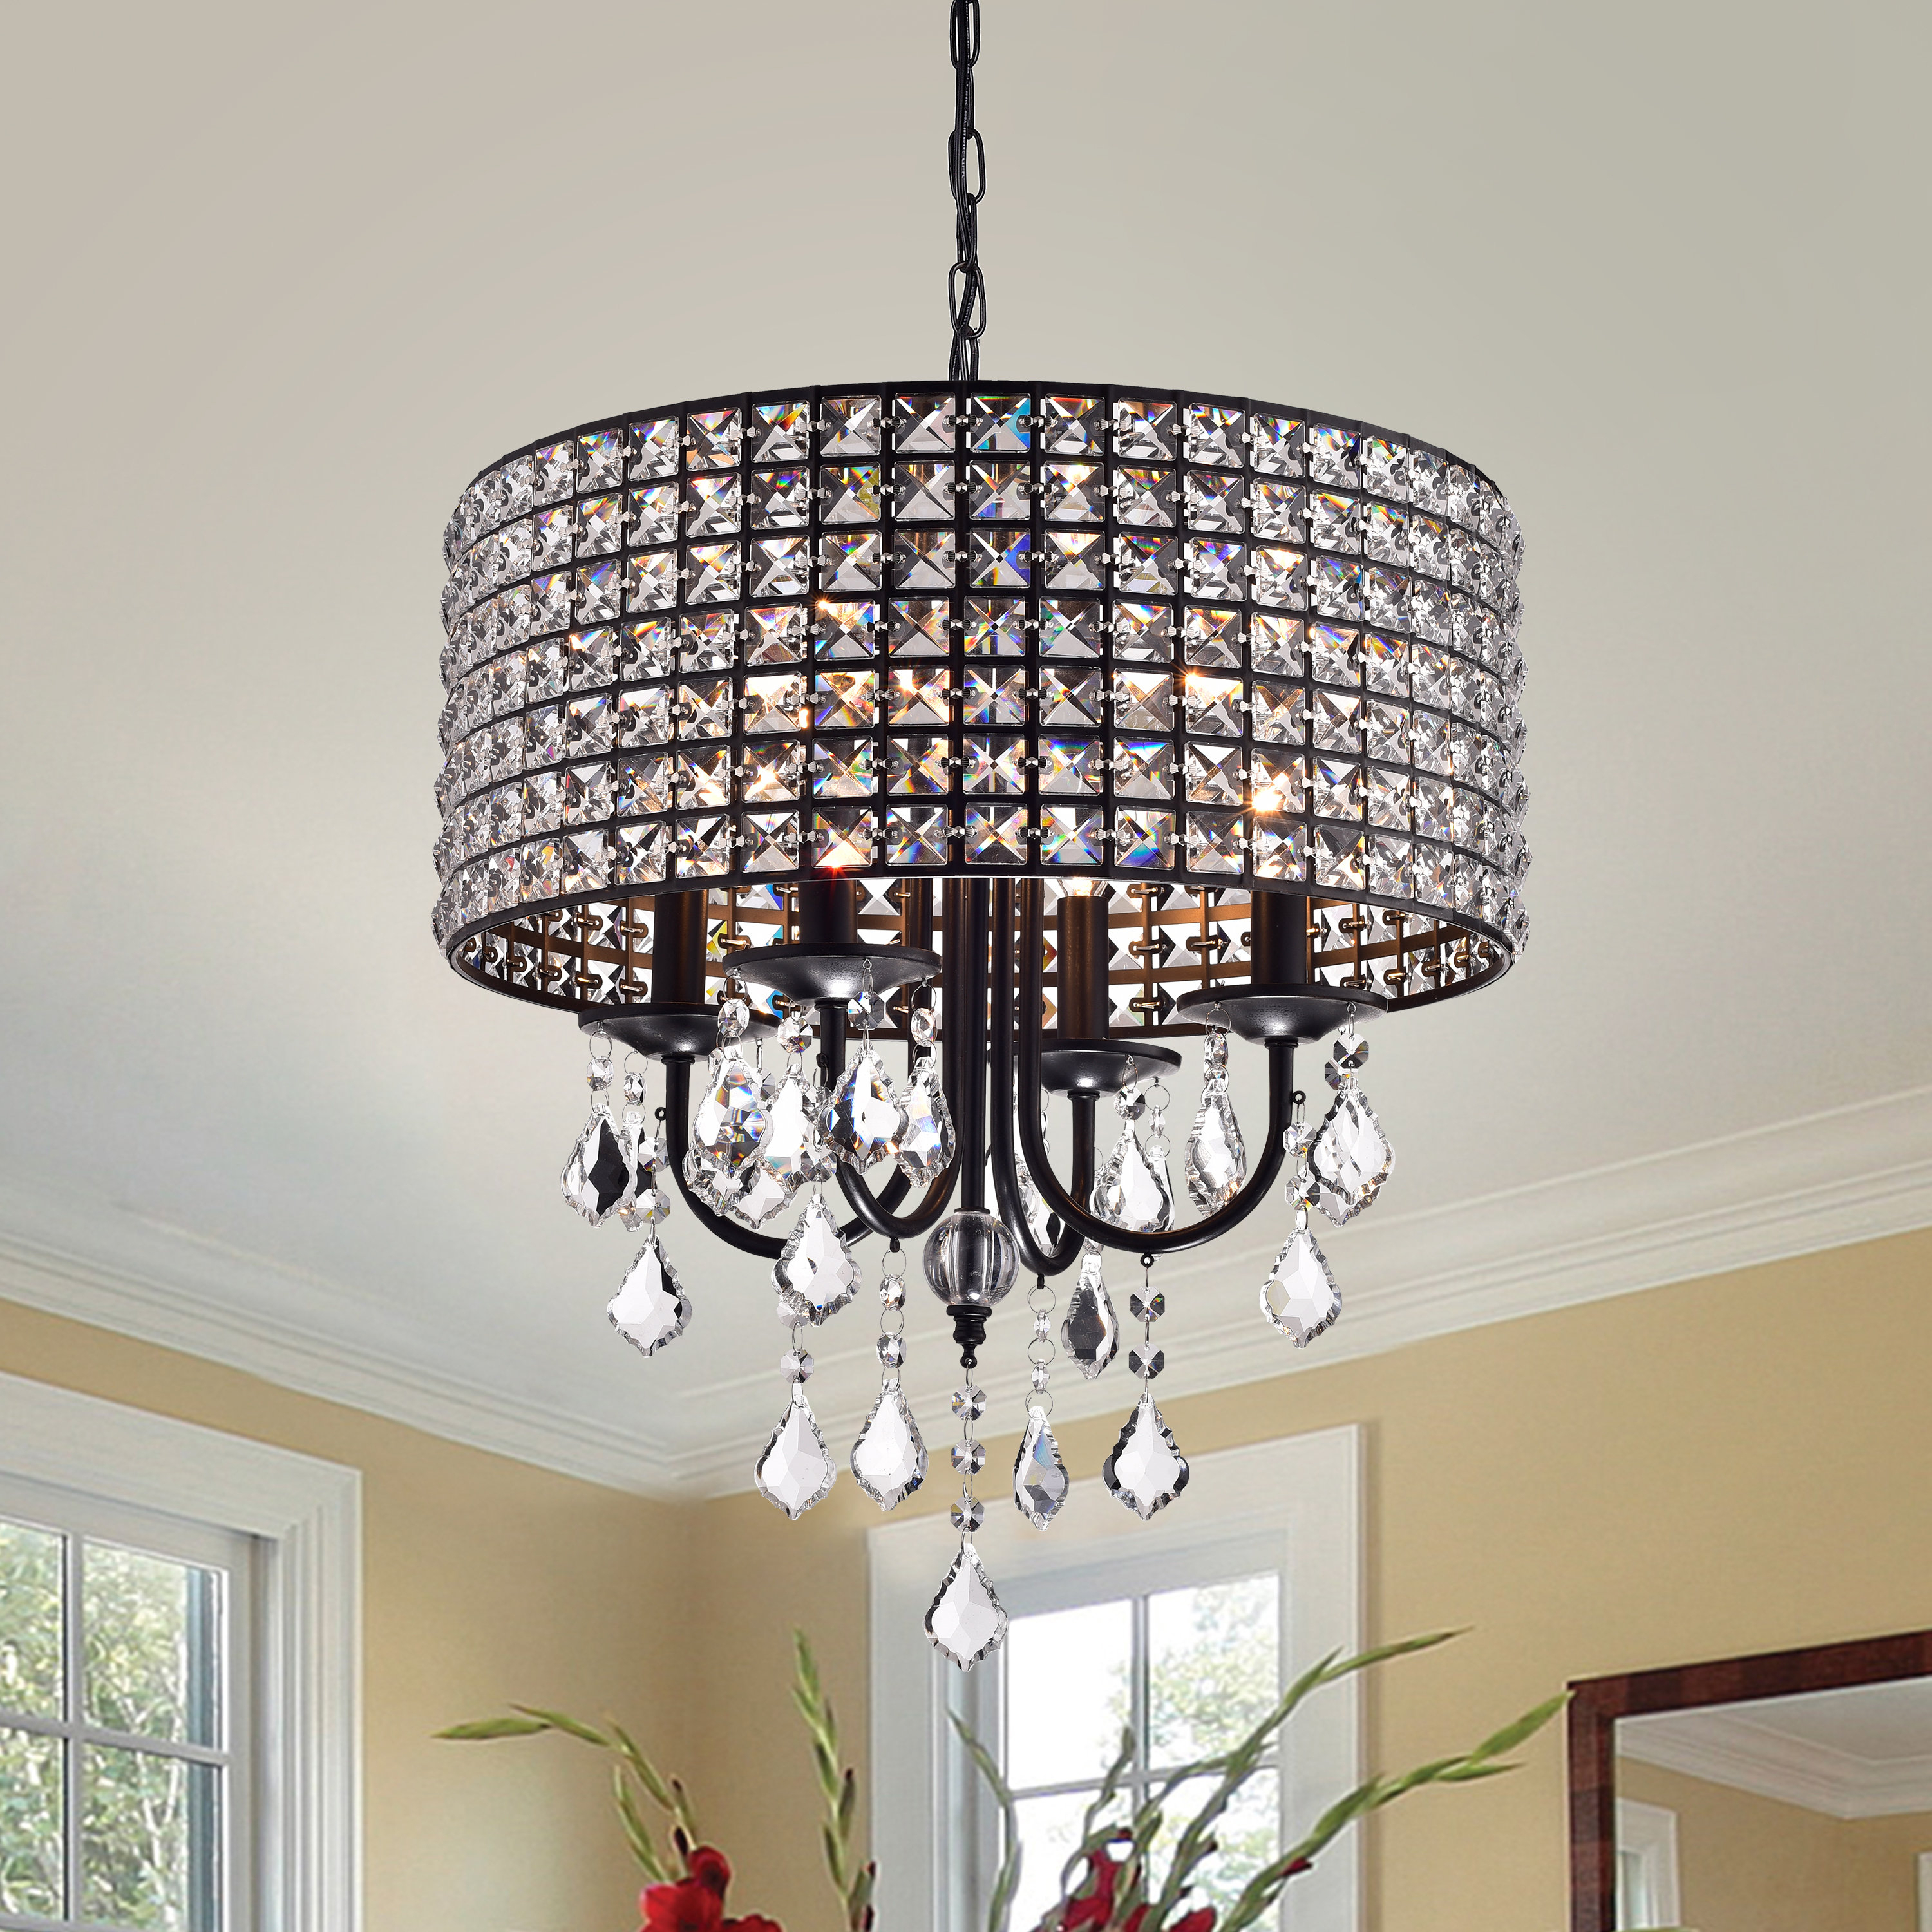 Mckamey 4 Light Crystal Chandeliers Throughout Fashionable Albano 4 Light Crystal Chandelier (View 5 of 20)